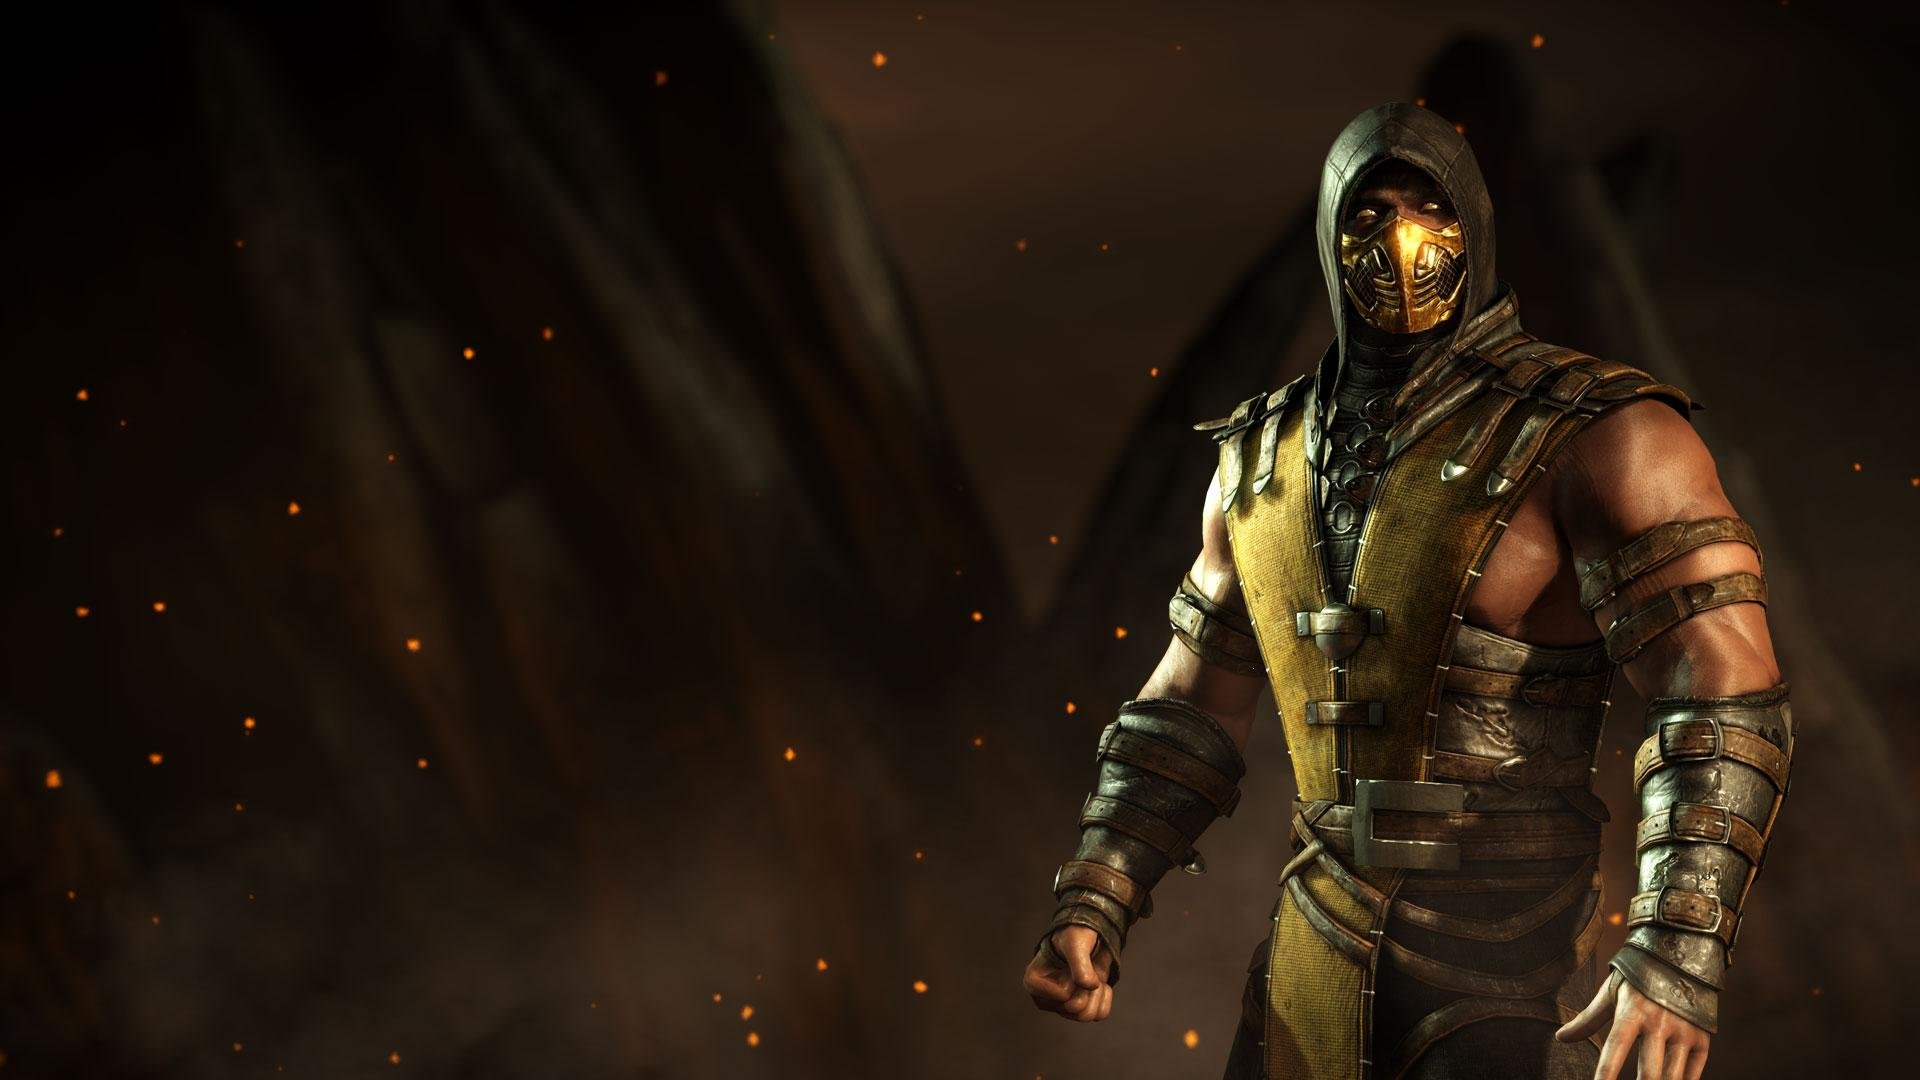 Scorpion Mortal Kombat Hd Wallpaper